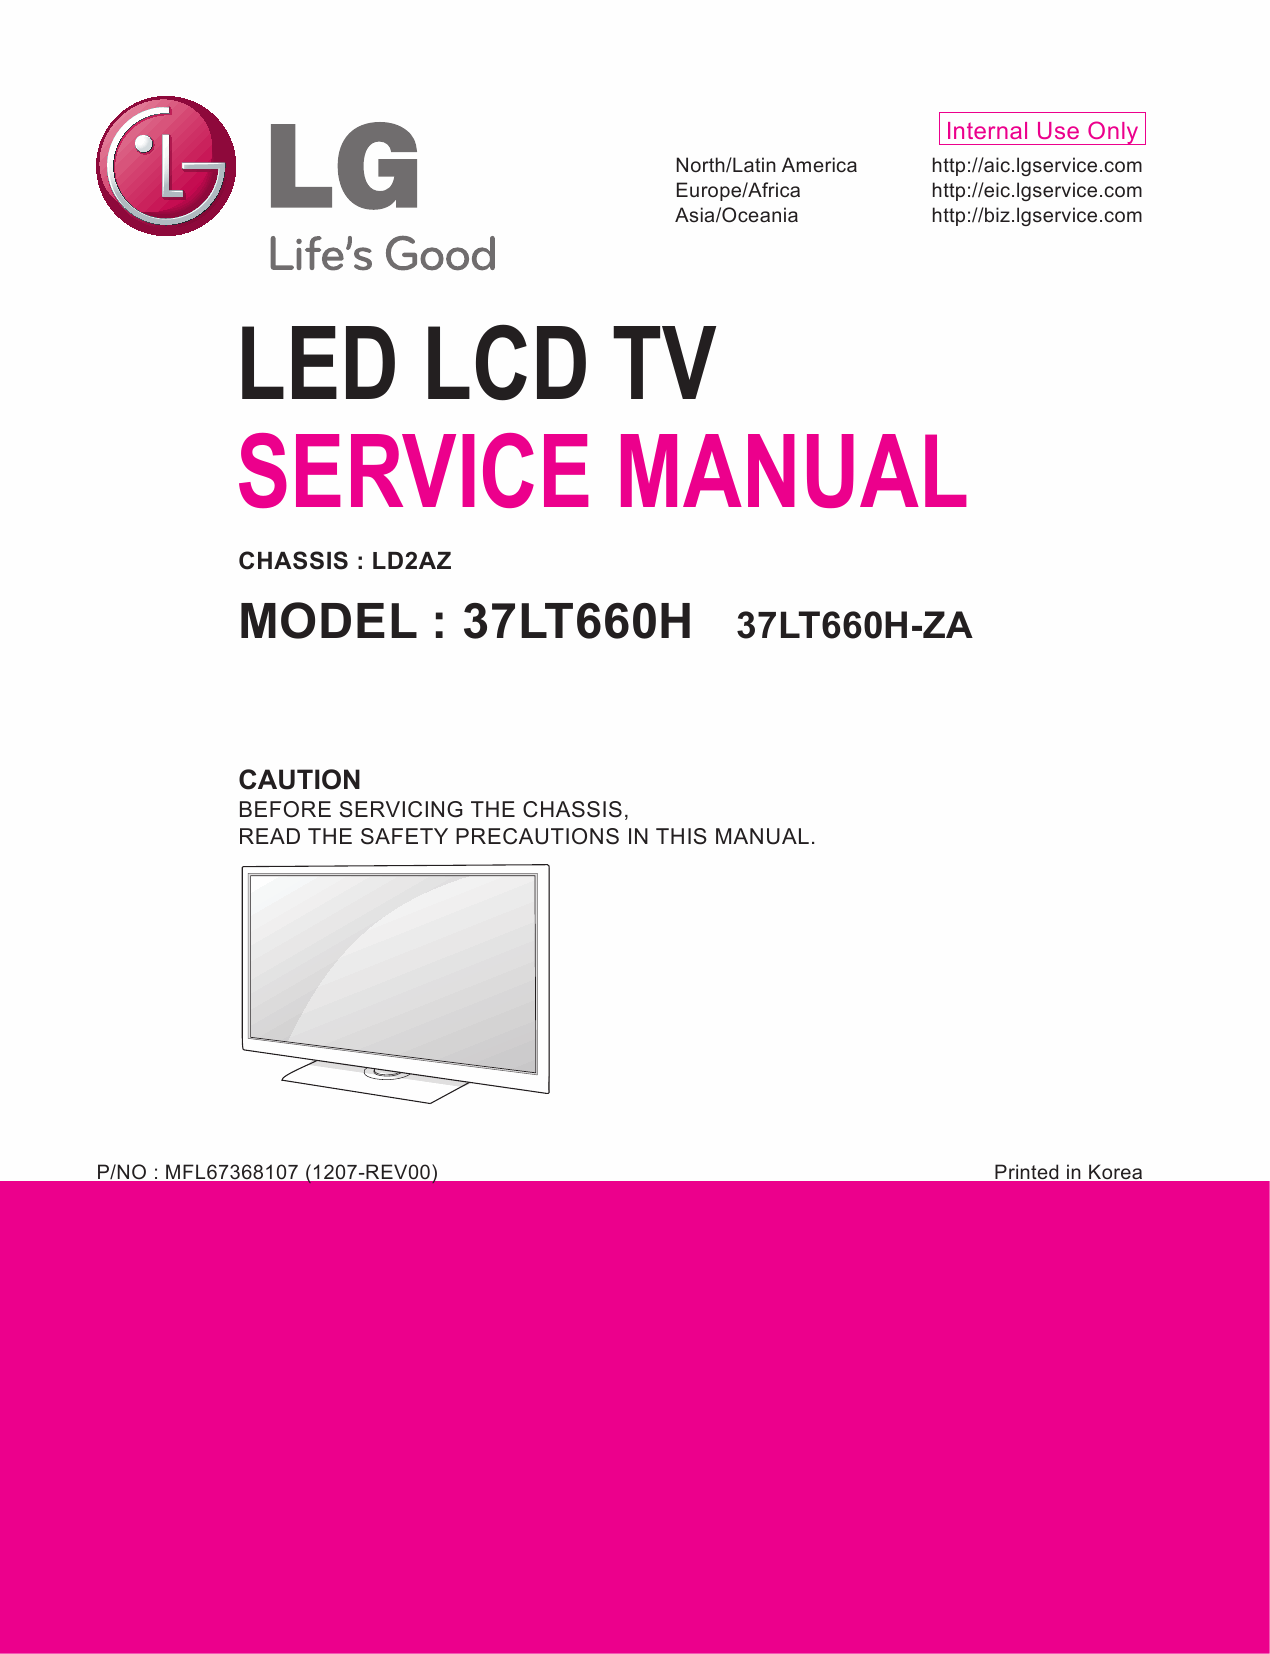 LG_LED_TV_37LT660H_Service_Manual_2012_Qmanual.com-1